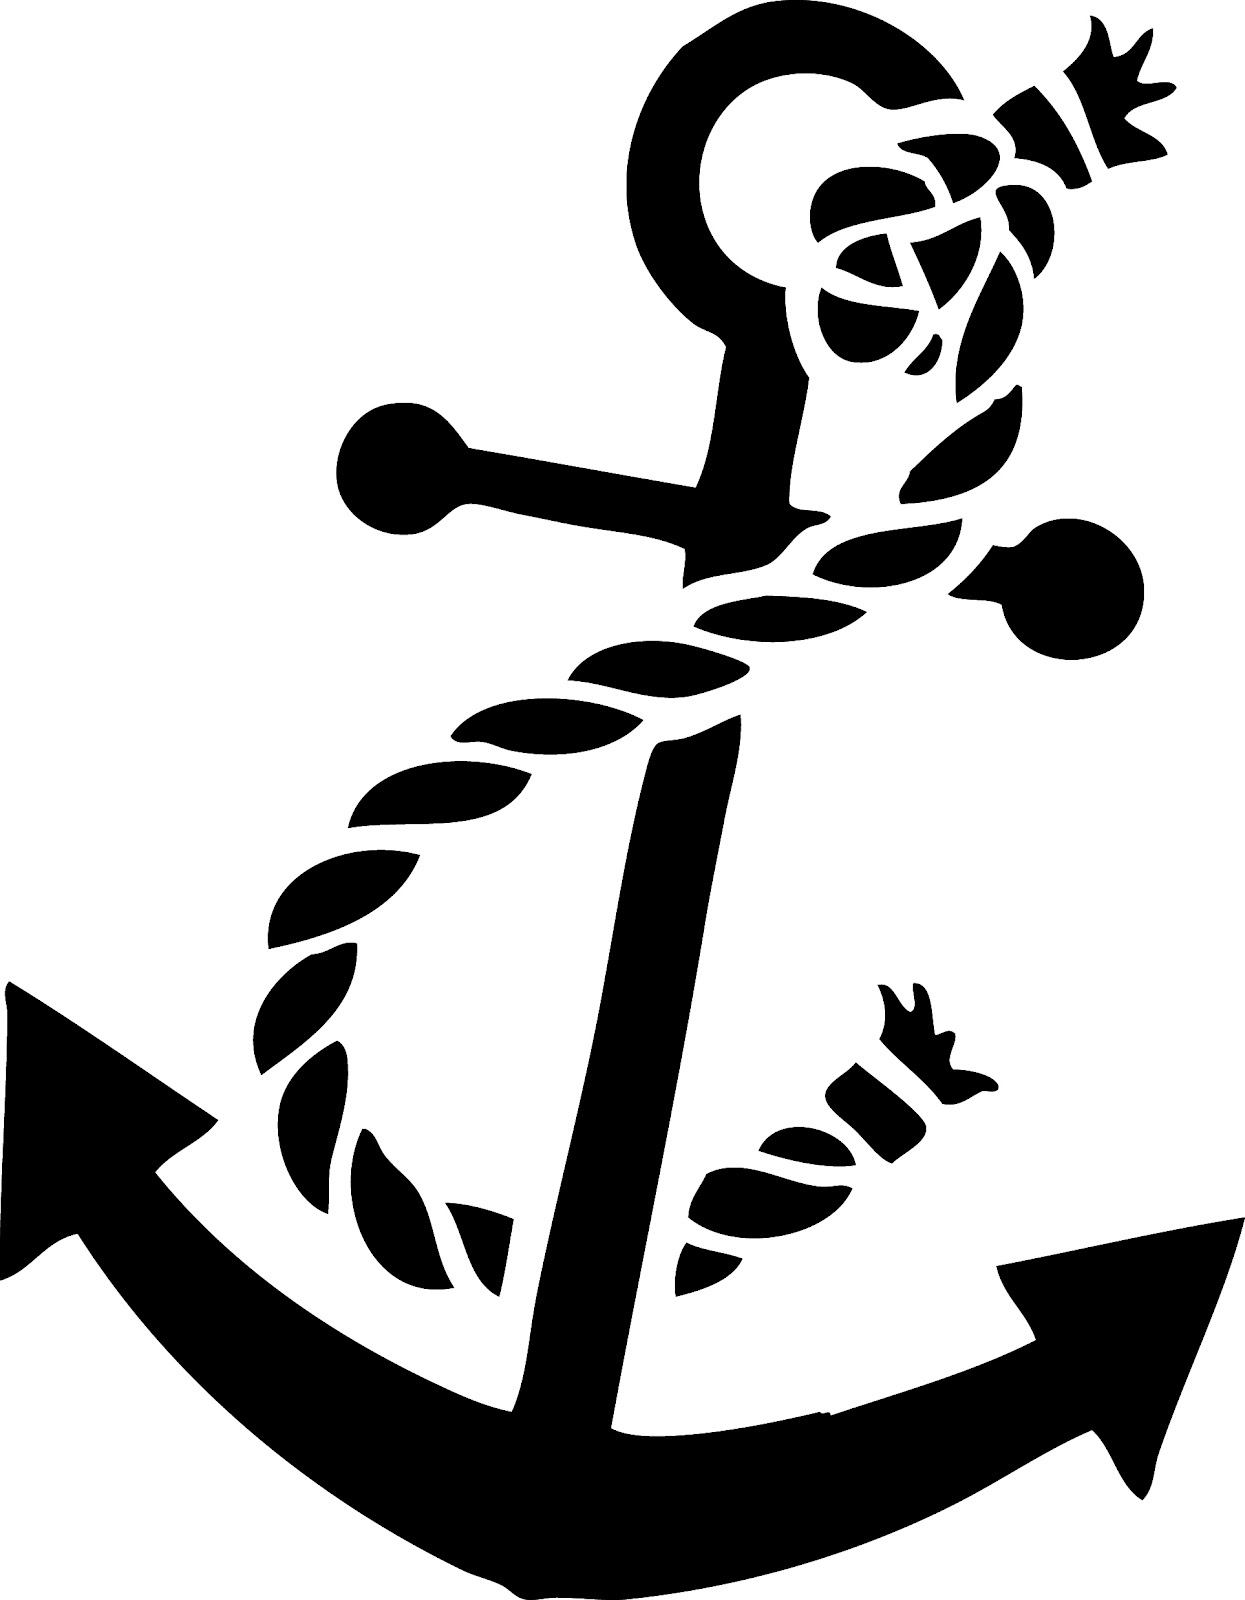 anchor free images at clker com vector clip art online royalty